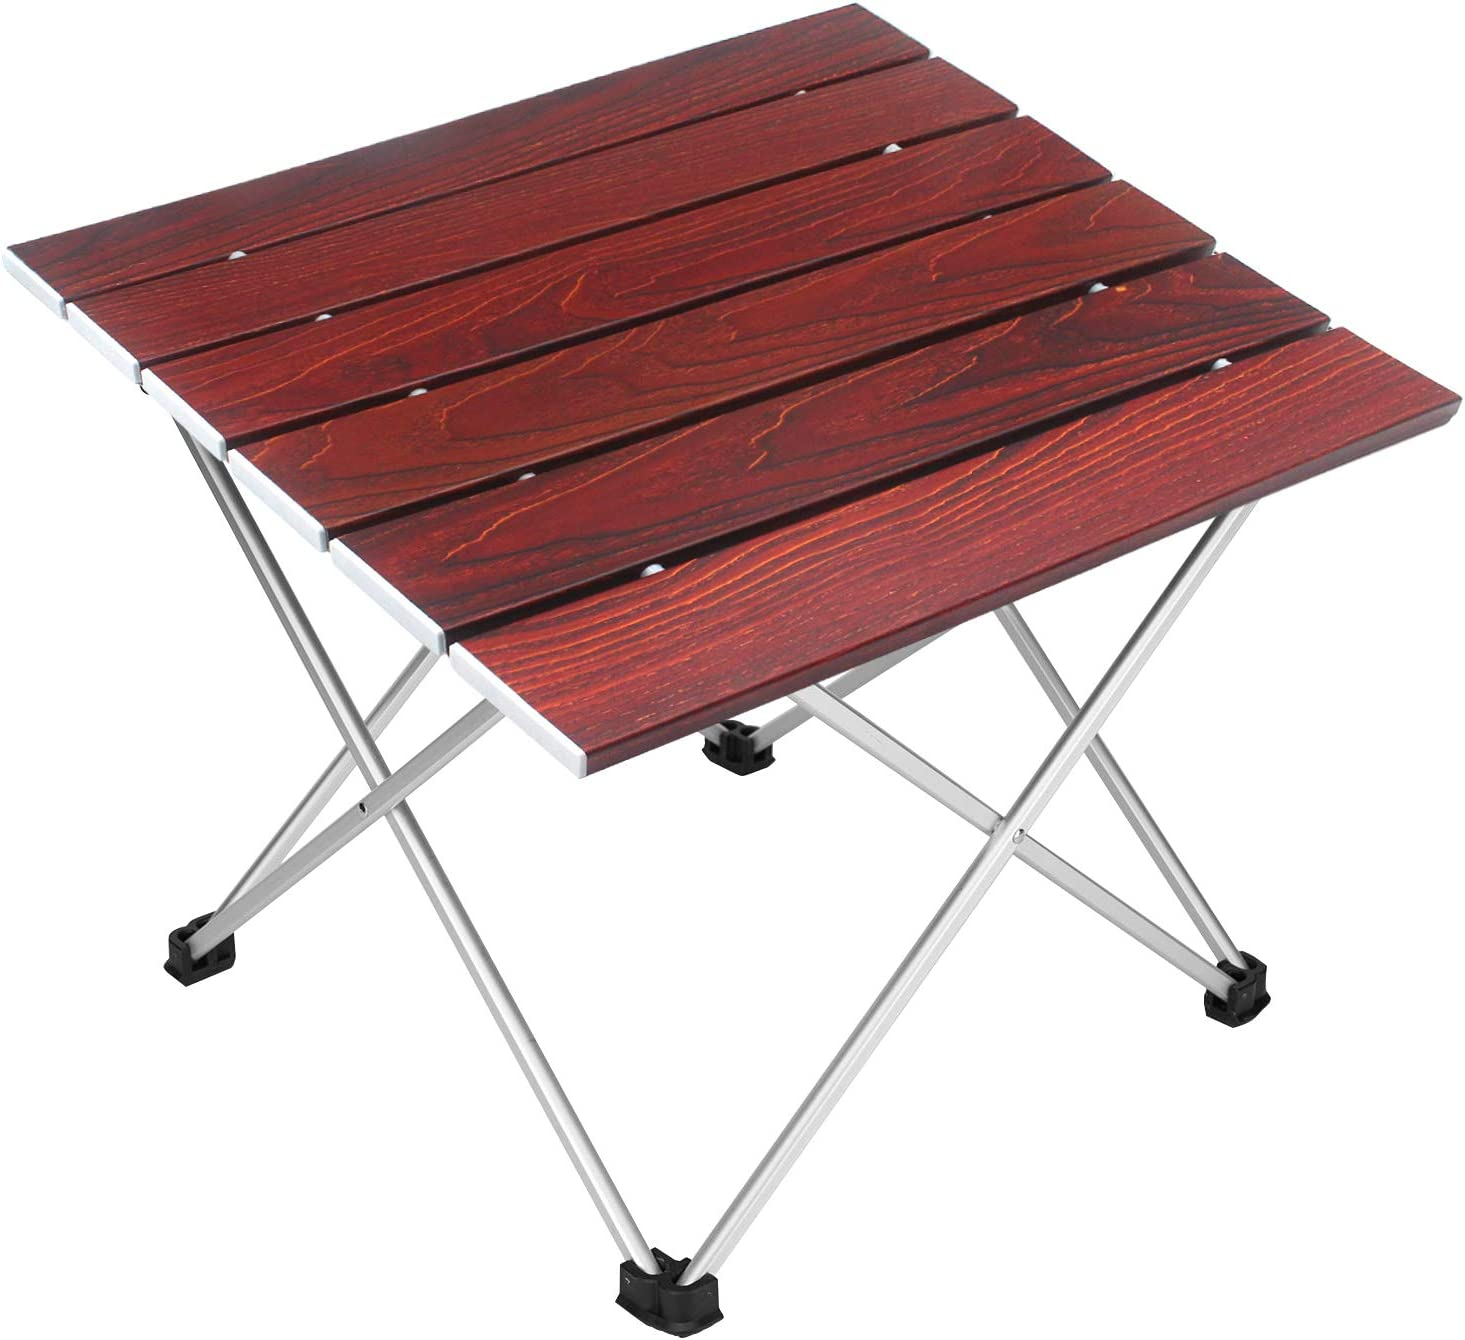 Beach BBQ Ultralight Aluminum Picnic Table Portable Roll Up Table with Storage Bag for Outdoor Camping Fishing Picnic H.yeed Folding Camping Table Small//Medium//Large